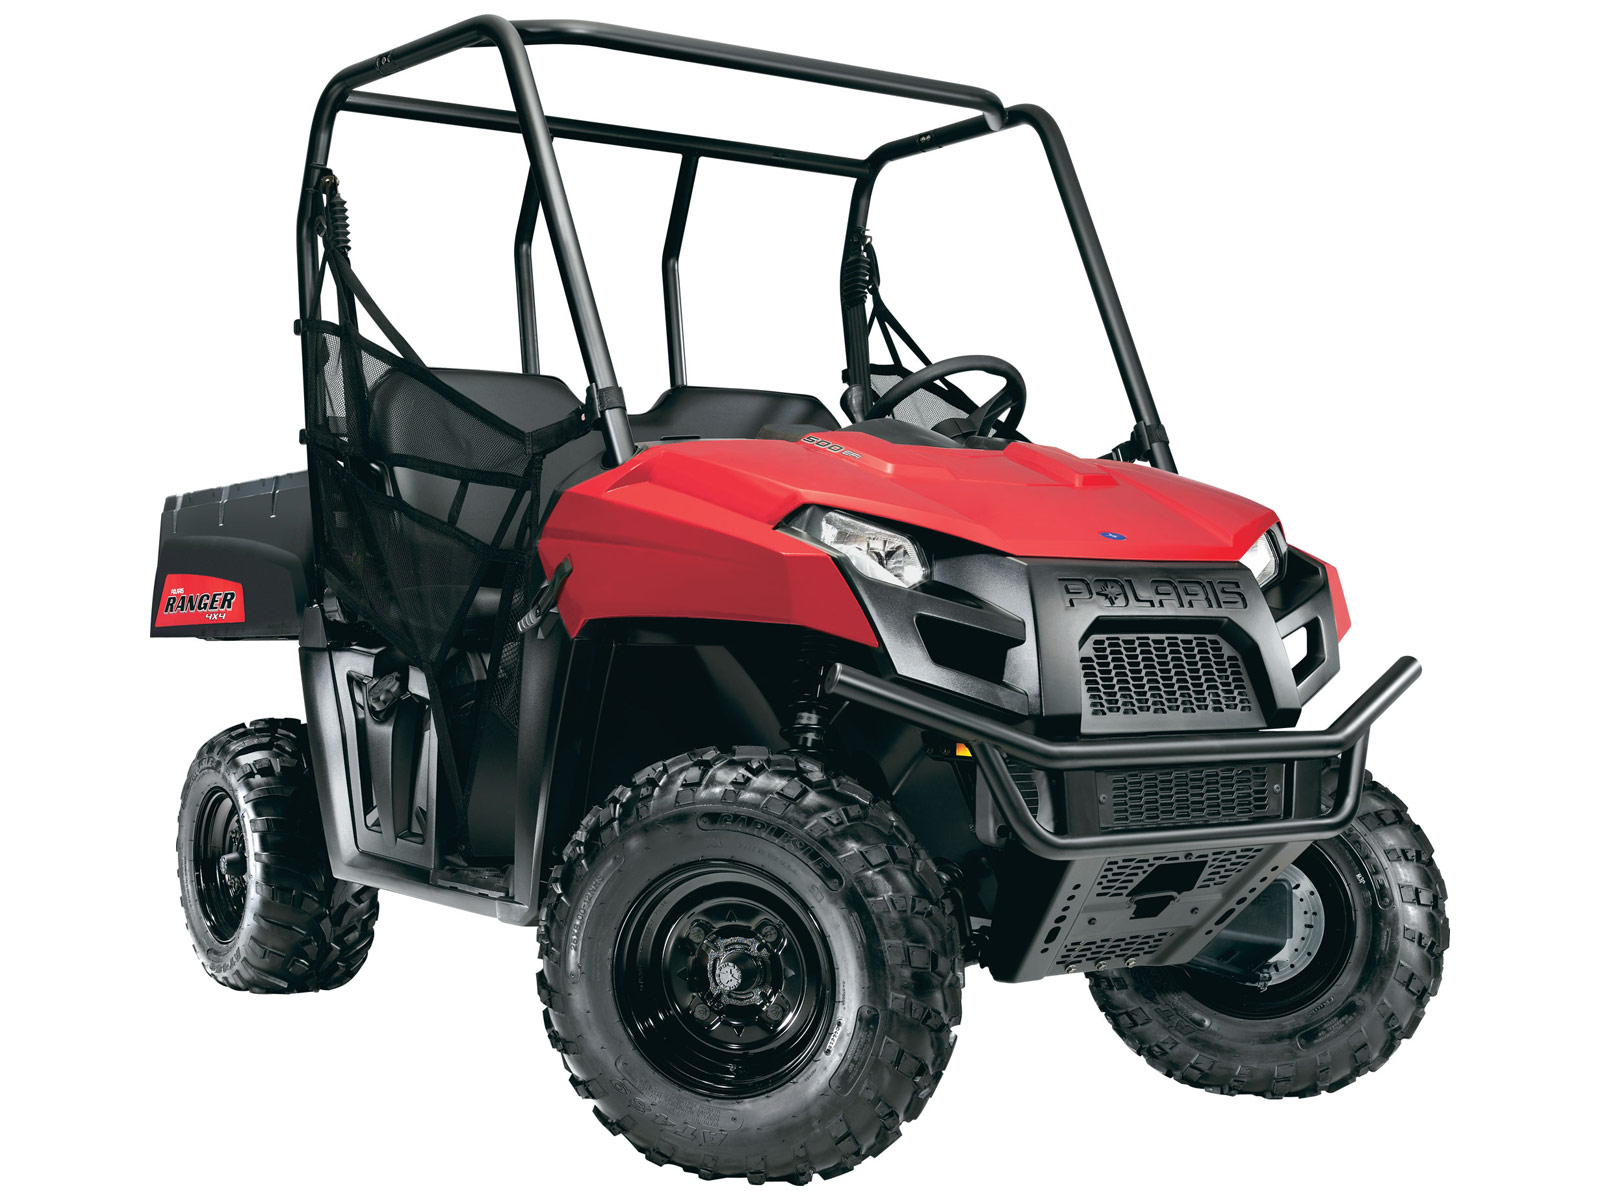 2015 Polaris Ranger 900 Service Manual